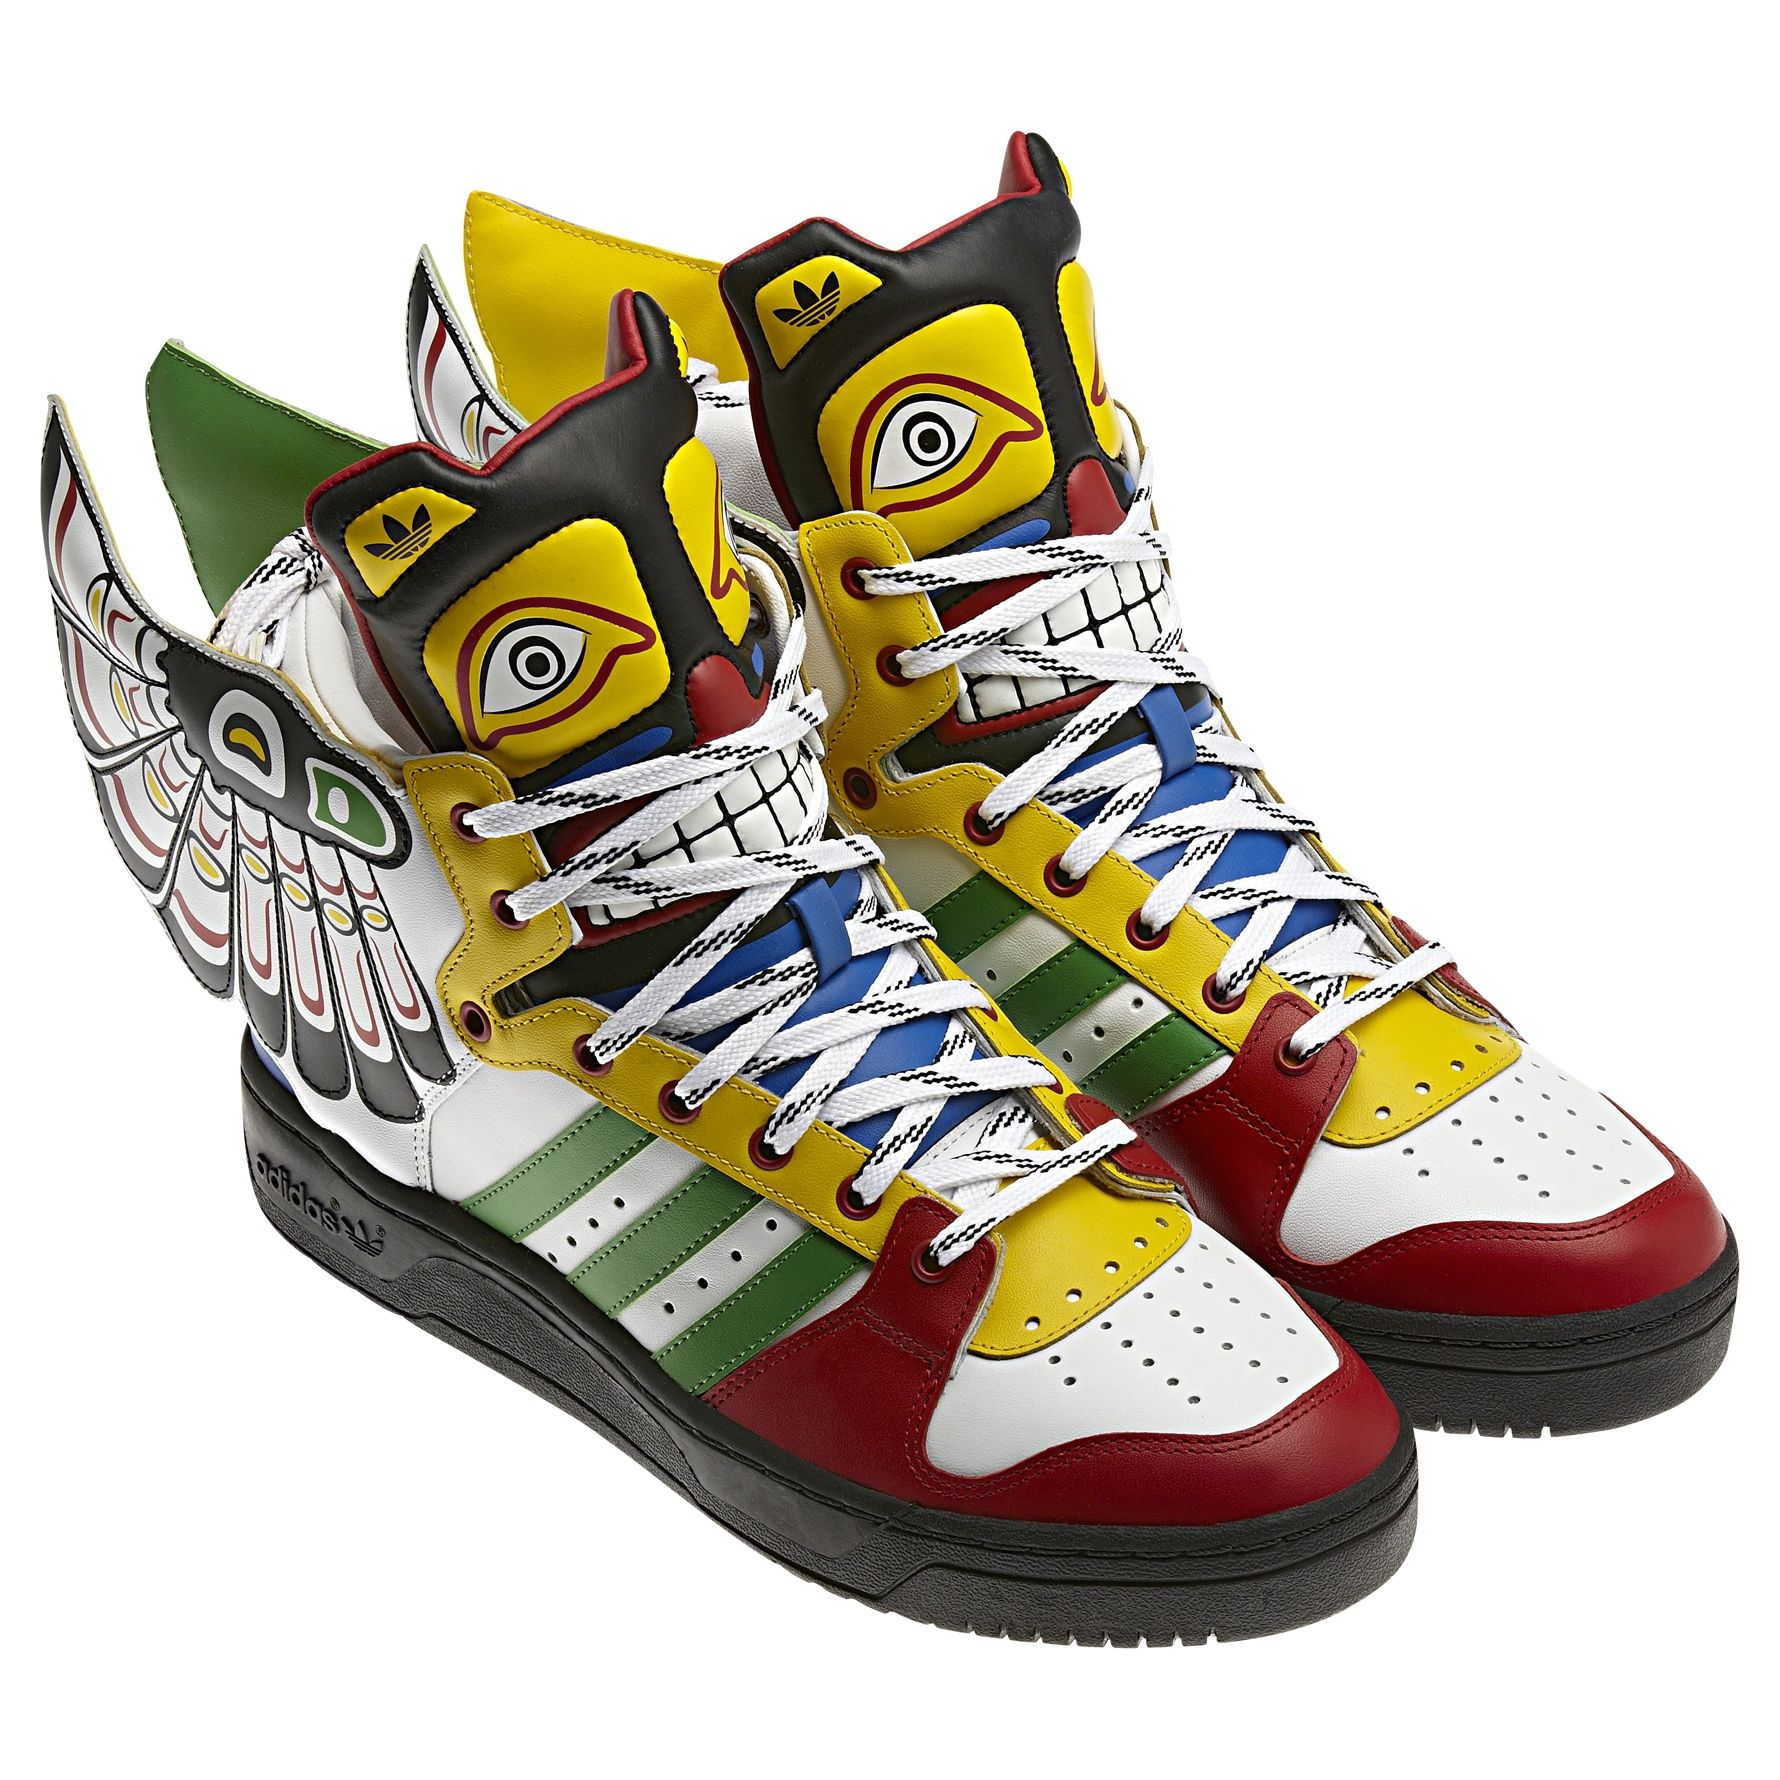 reputable site 273ee 82cd7 jeremy scott totem adidas